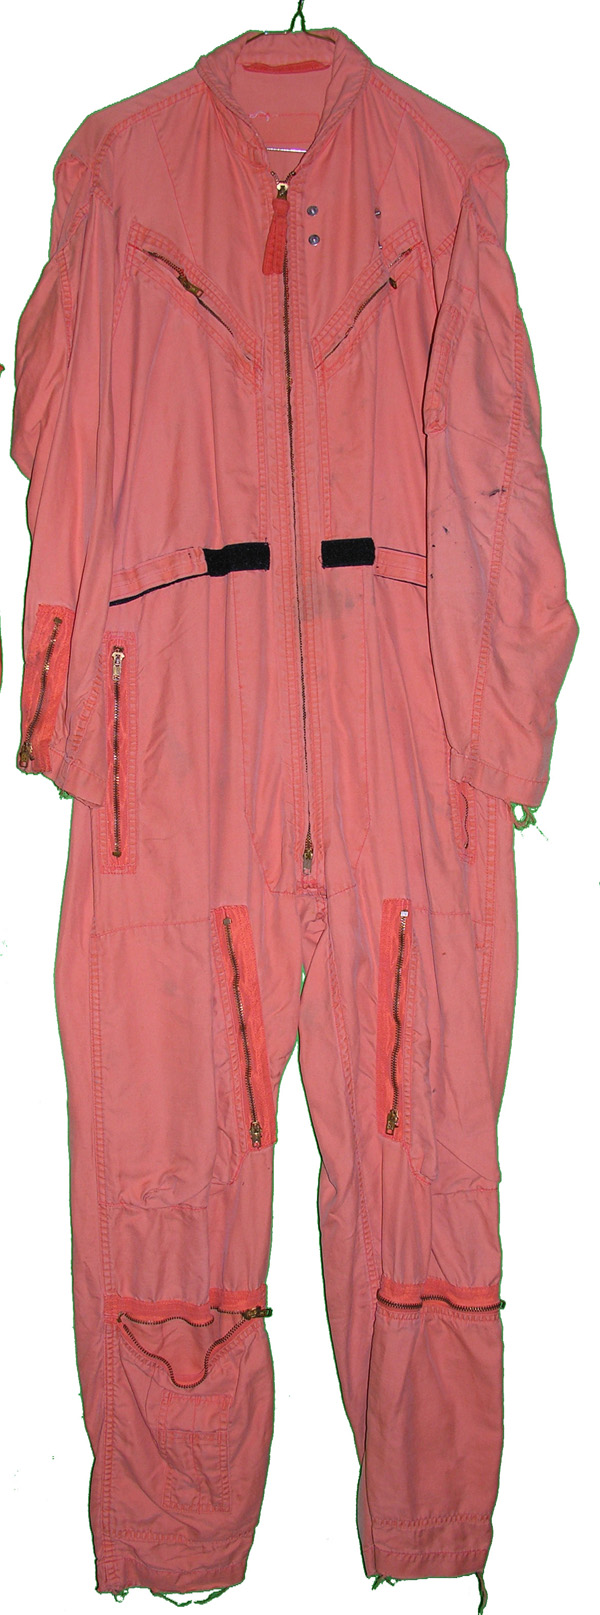 US Navy Indian Orange Flight Suit with rigger pocket